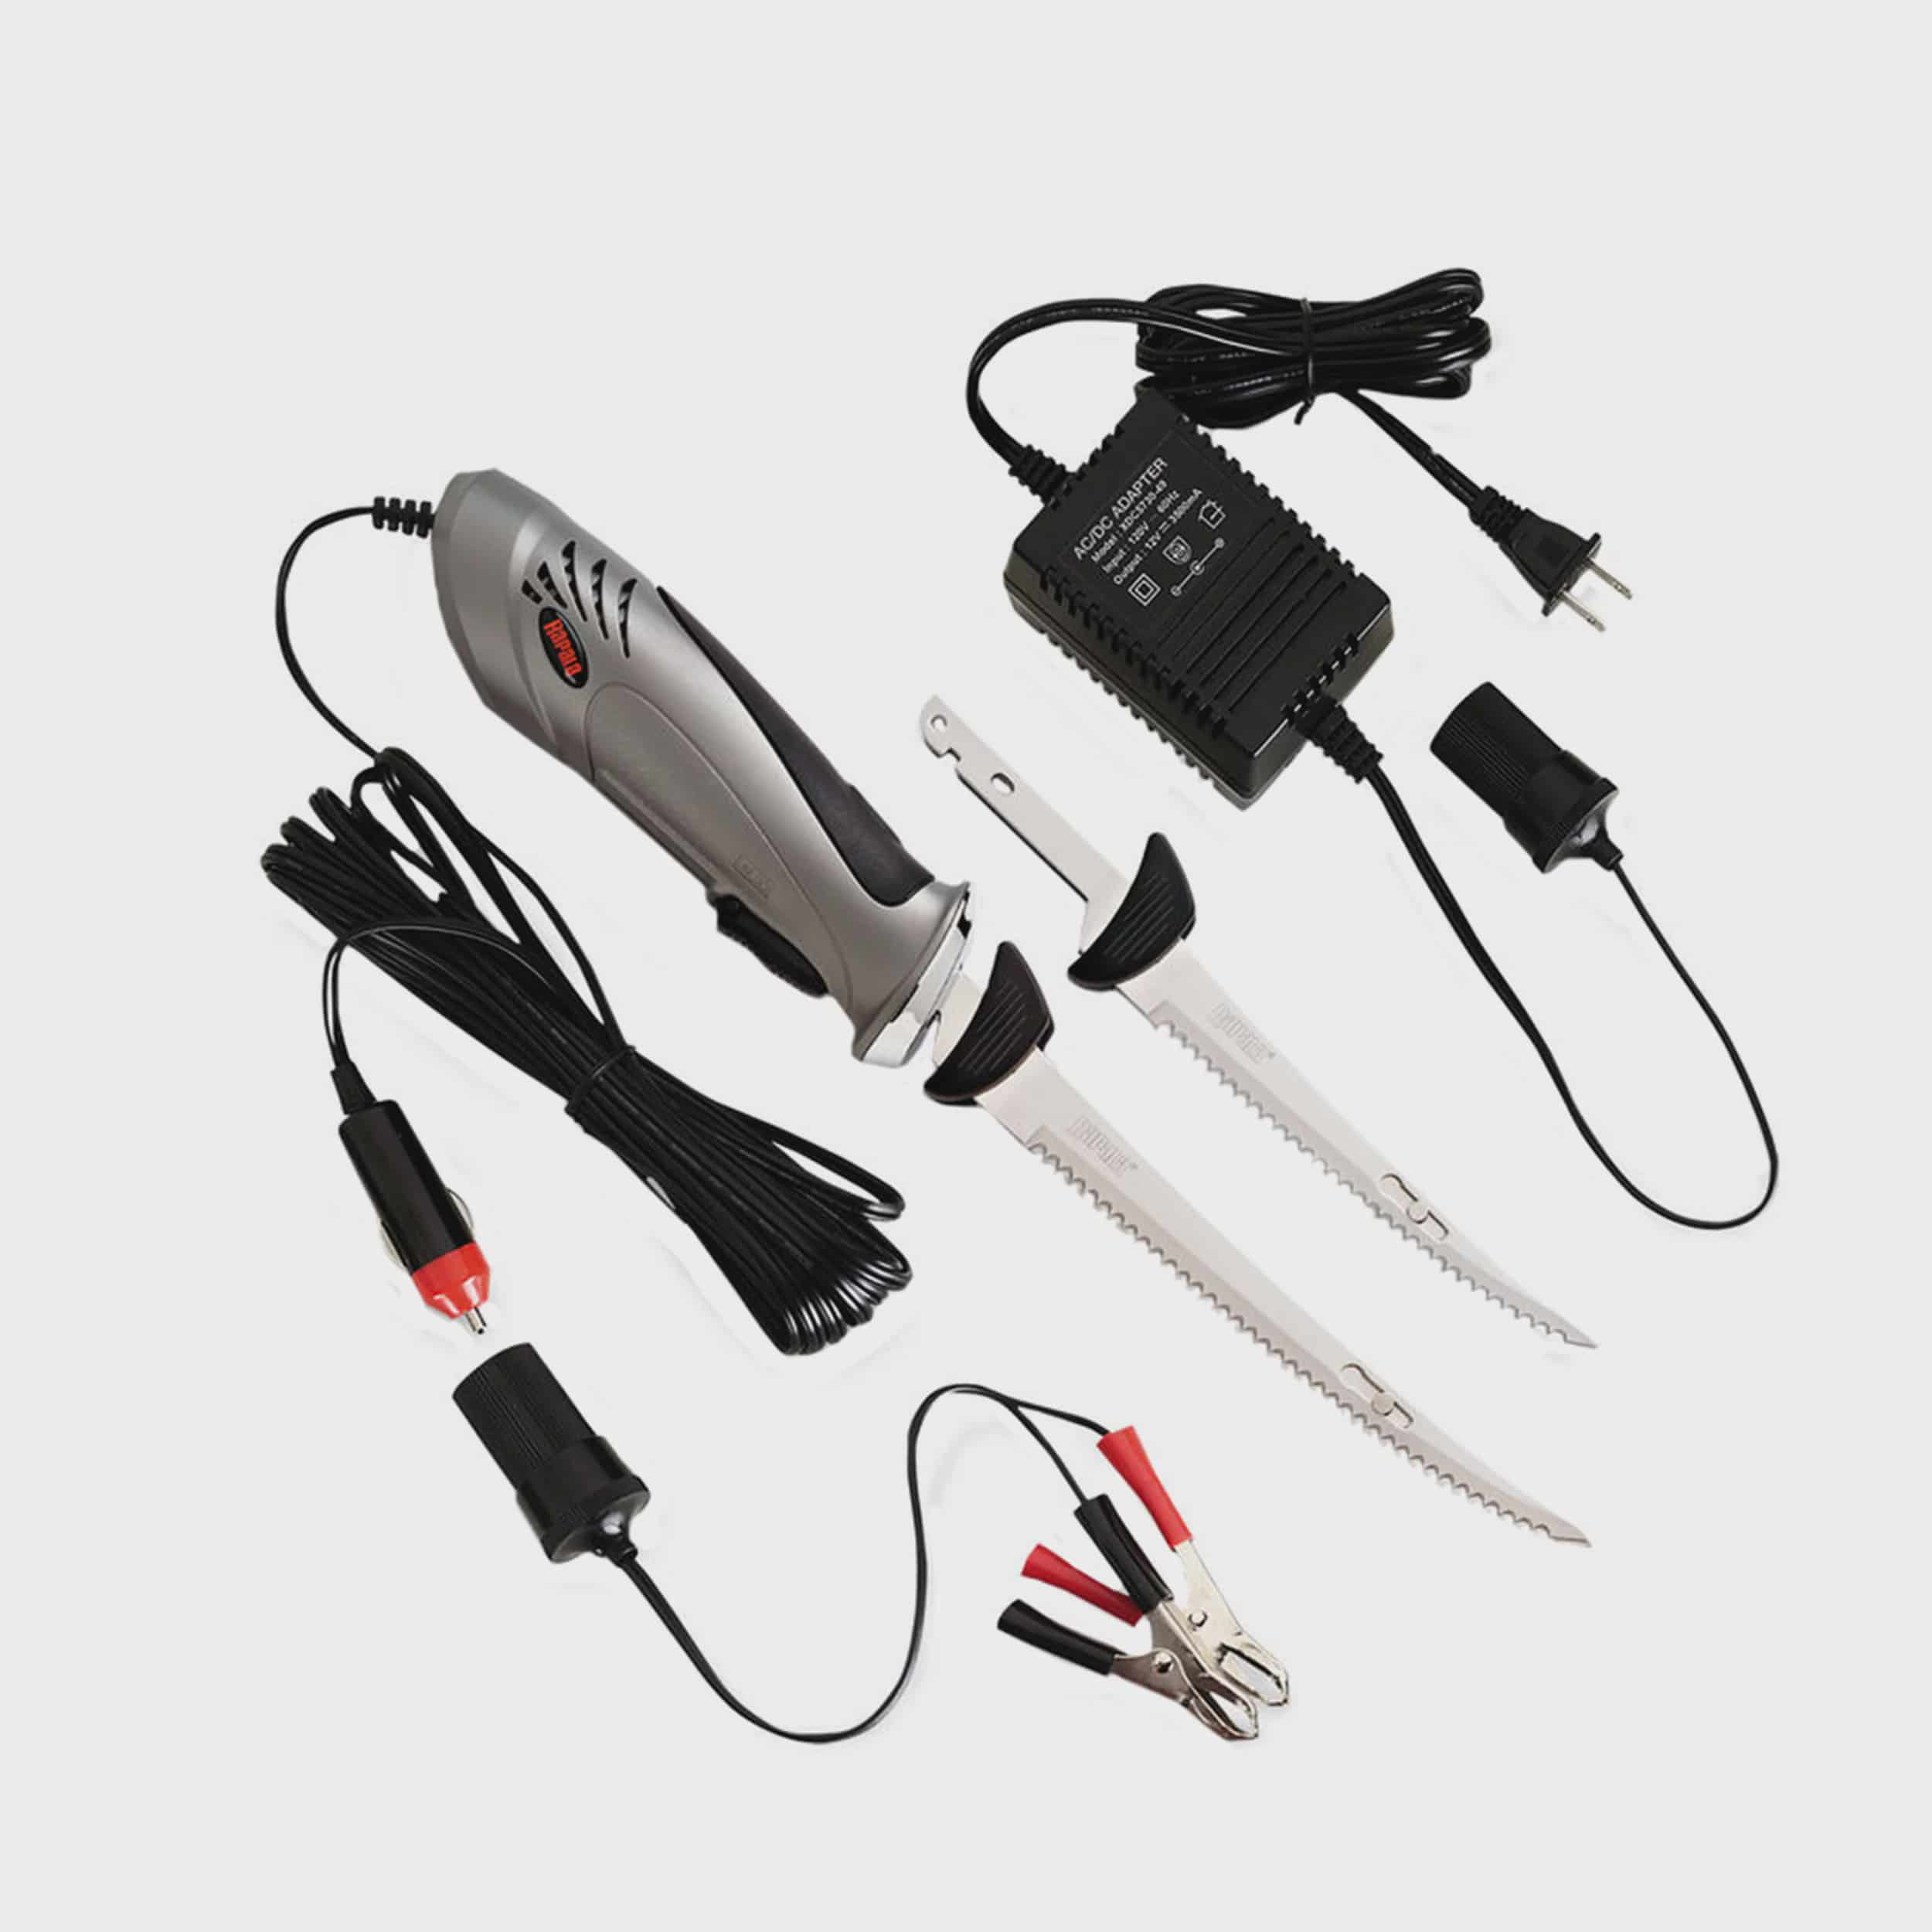 Rapala Heavy Duty Electric Knife Deluxe, AC DC by Rapala